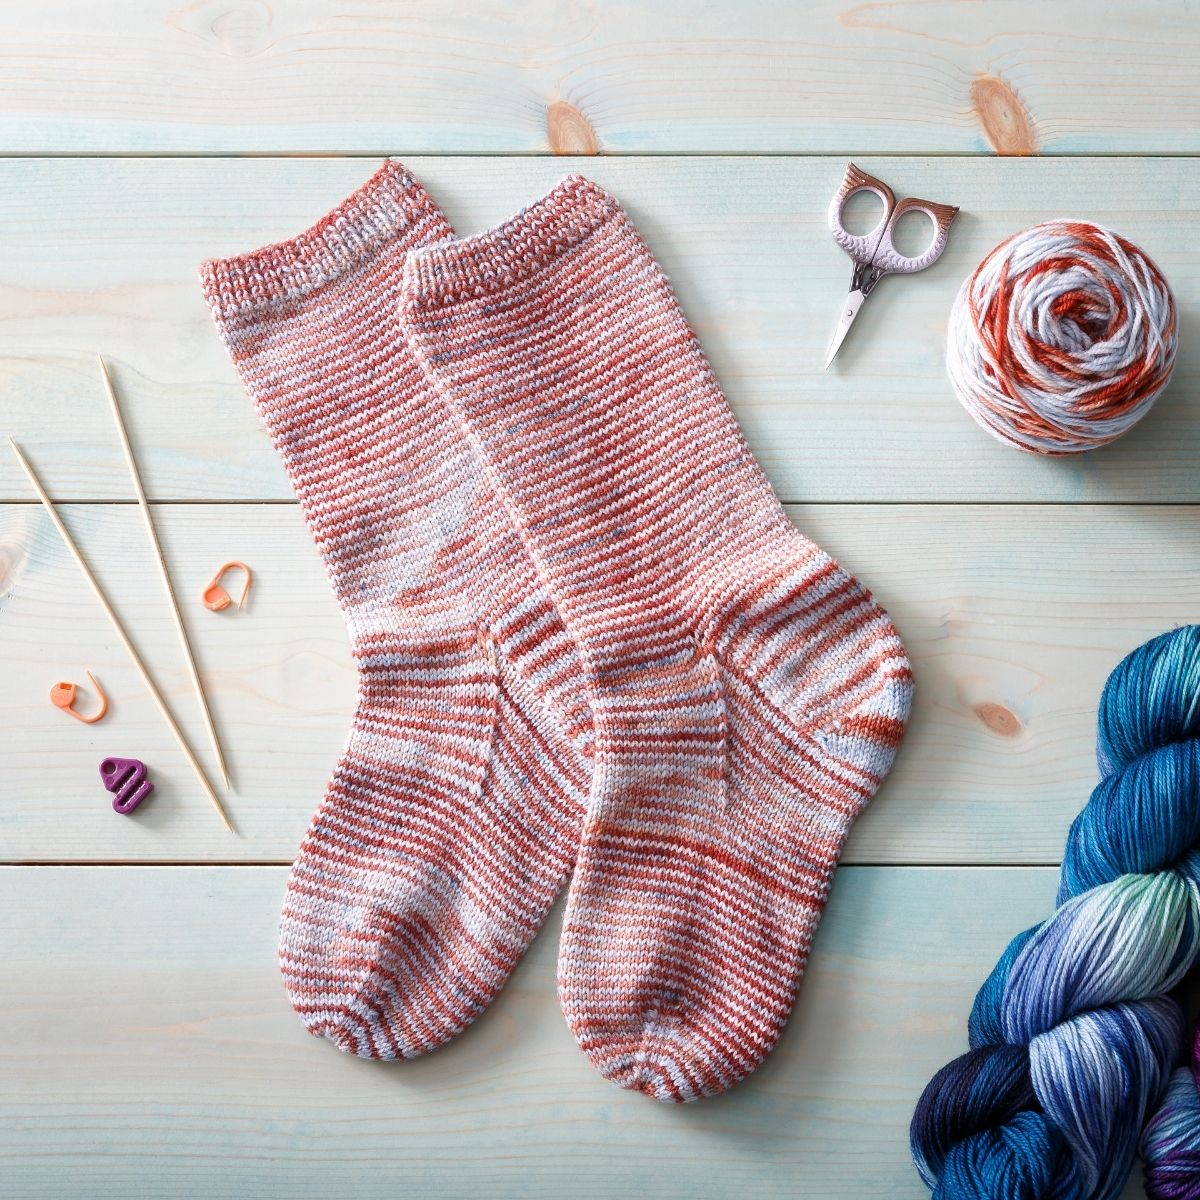 A pair of socks knit in Manos Del Uraguay Alegria, colorway Colorado River, laid flat on a wooden surface. Scissors, knitting notions and yarn surround the socks.